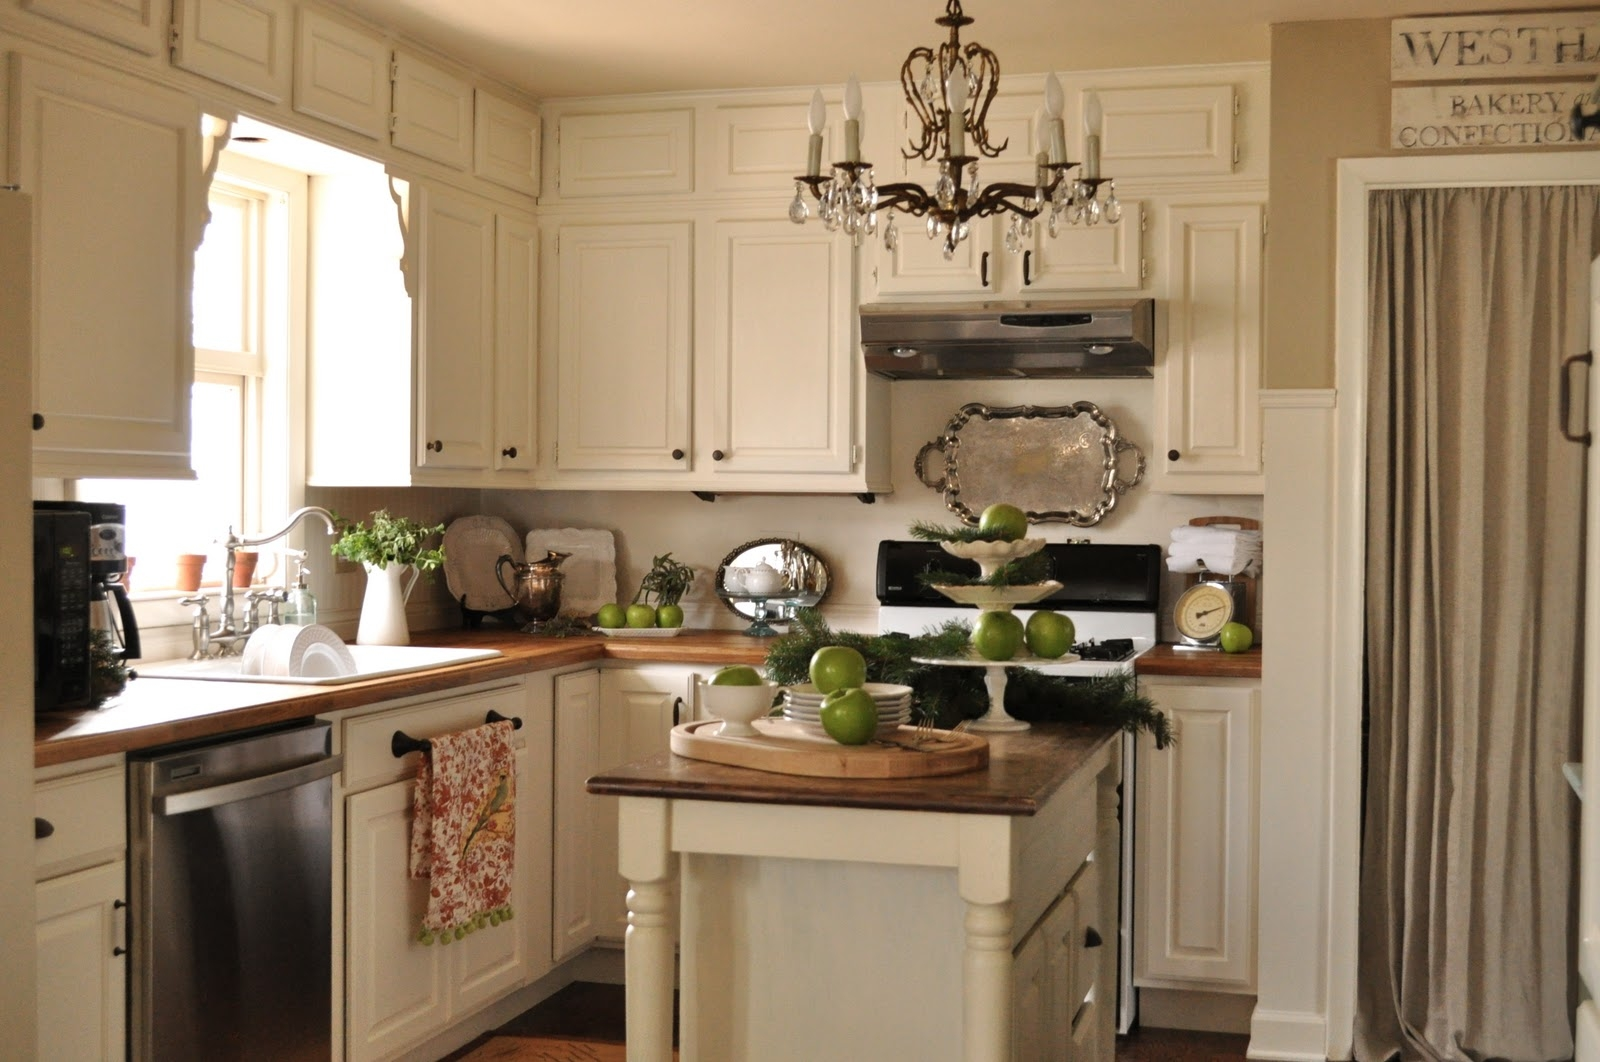 Ideas For Remodeling Old Kitchen Cabinets